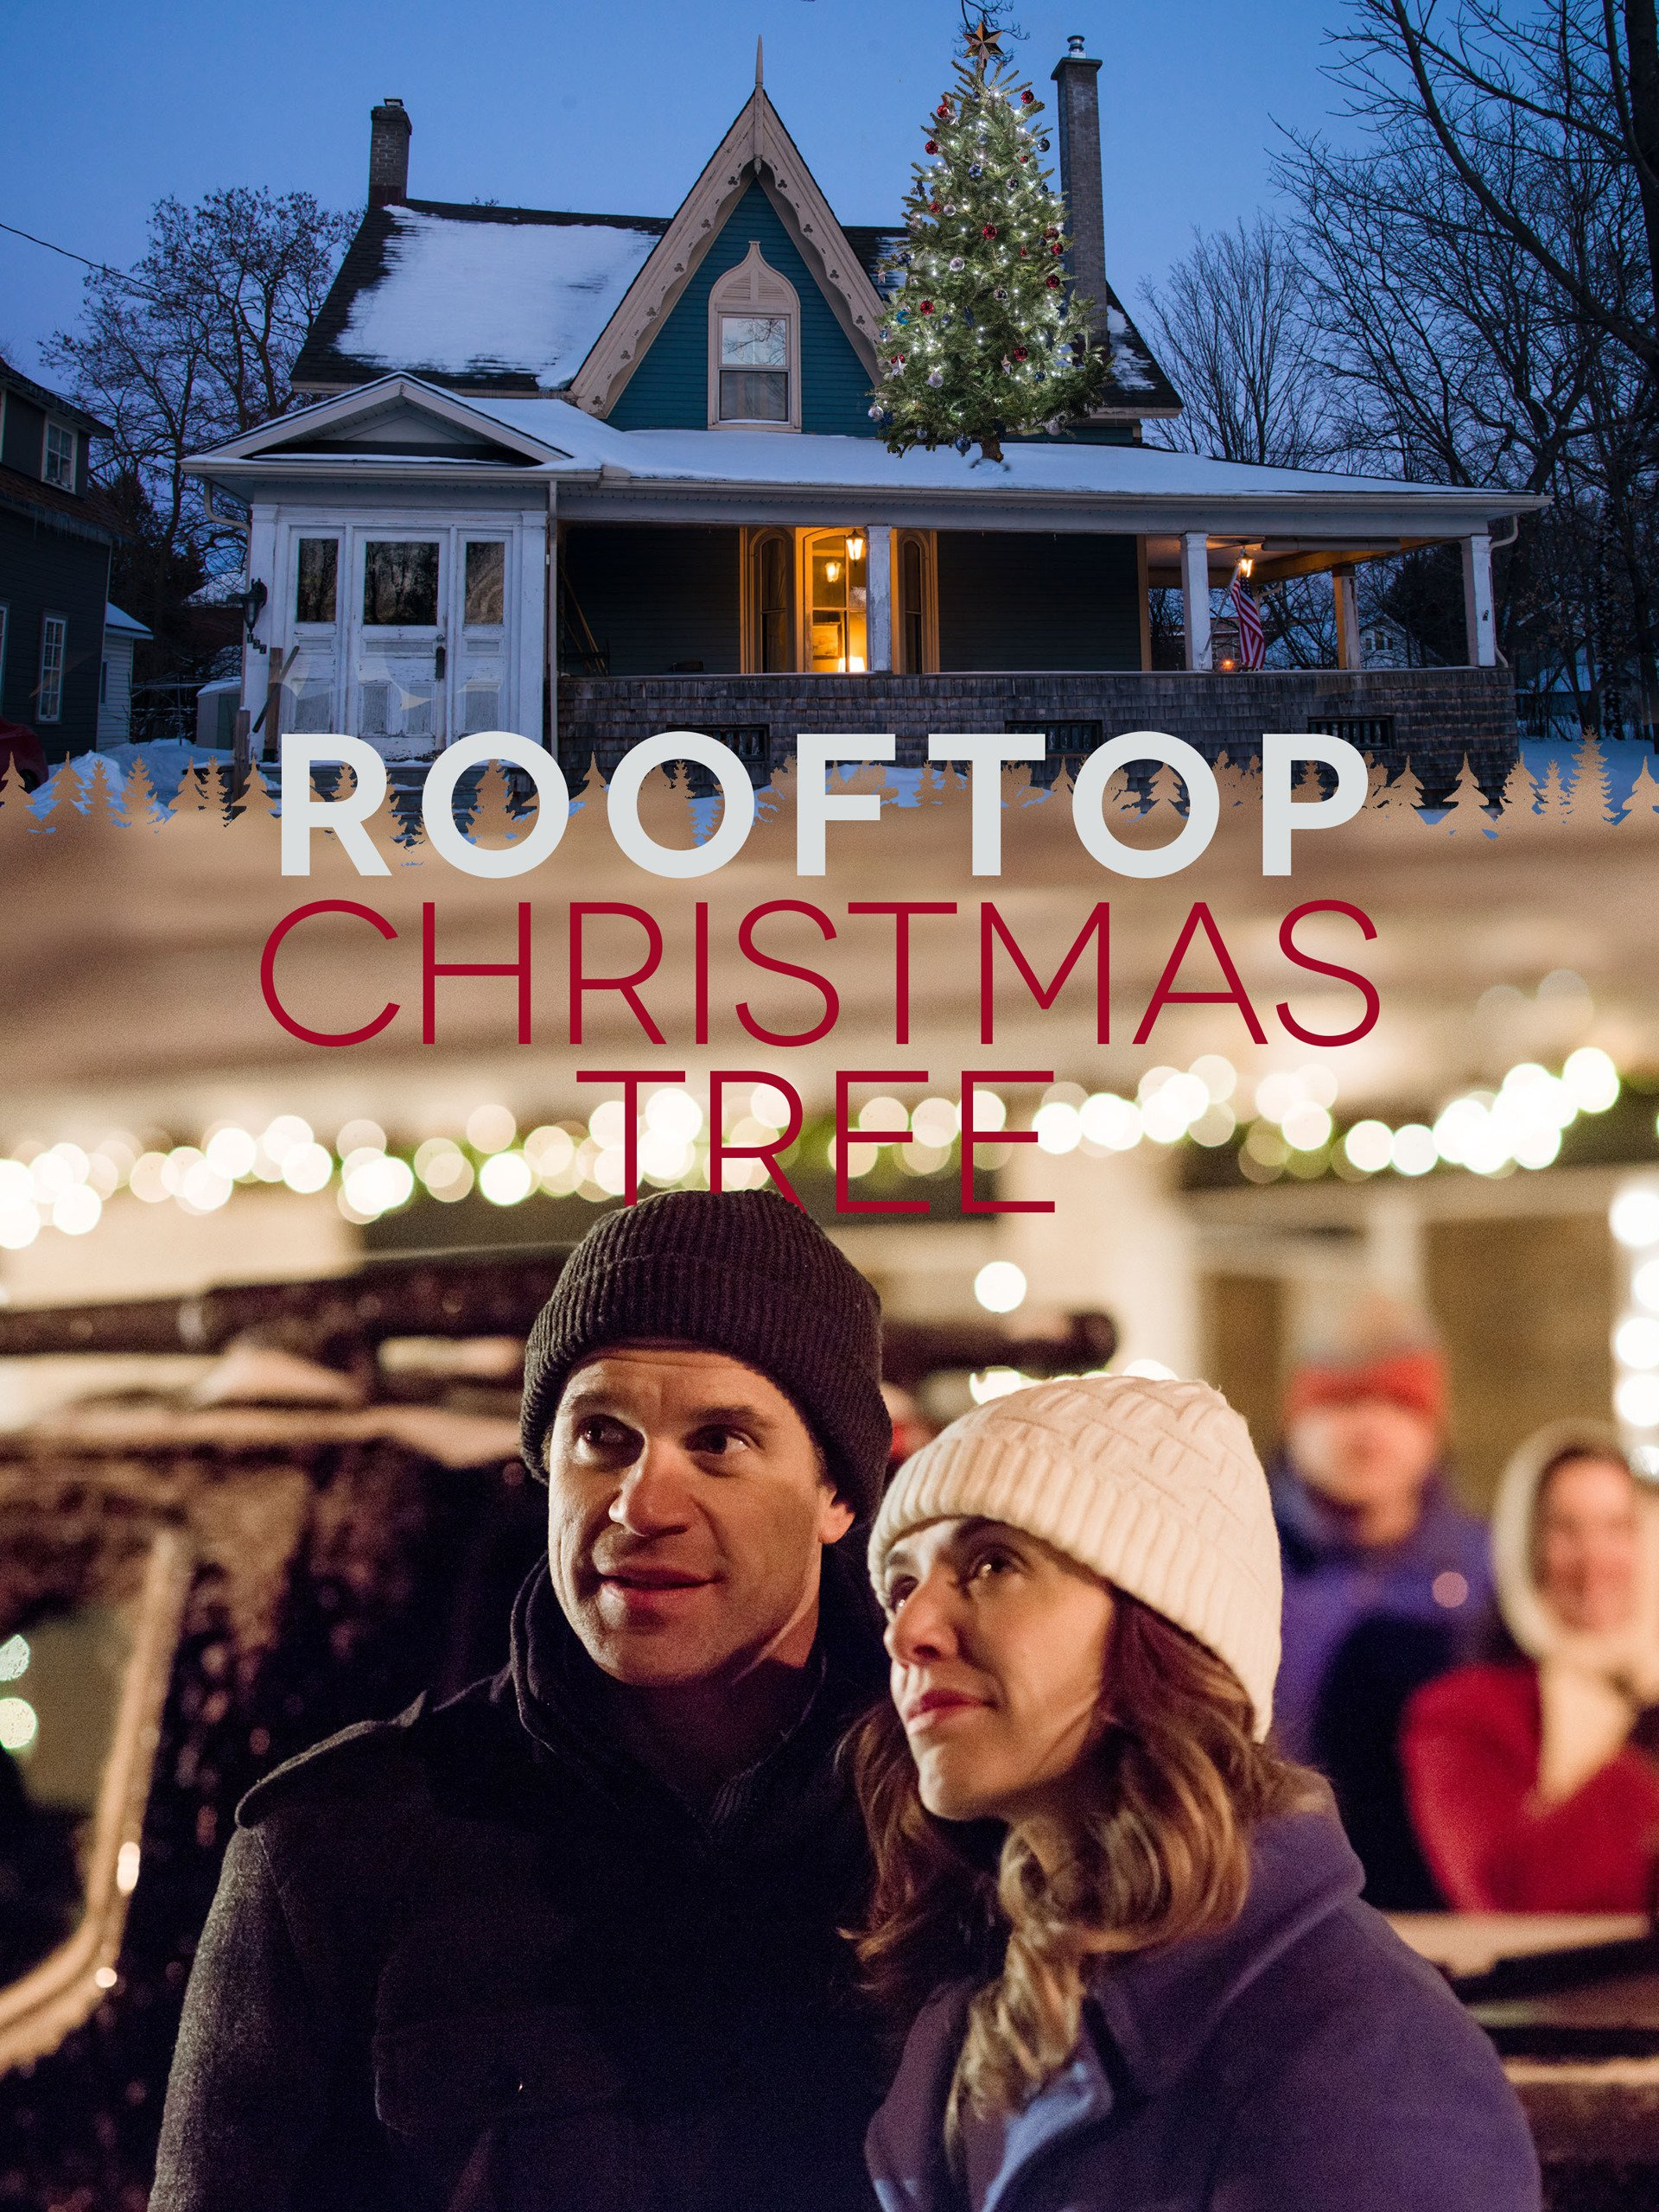 The Rooftop Christmas Tree >> Amazon Com The Rooftop Christmas Tree Michelle Morgan Tim Reid